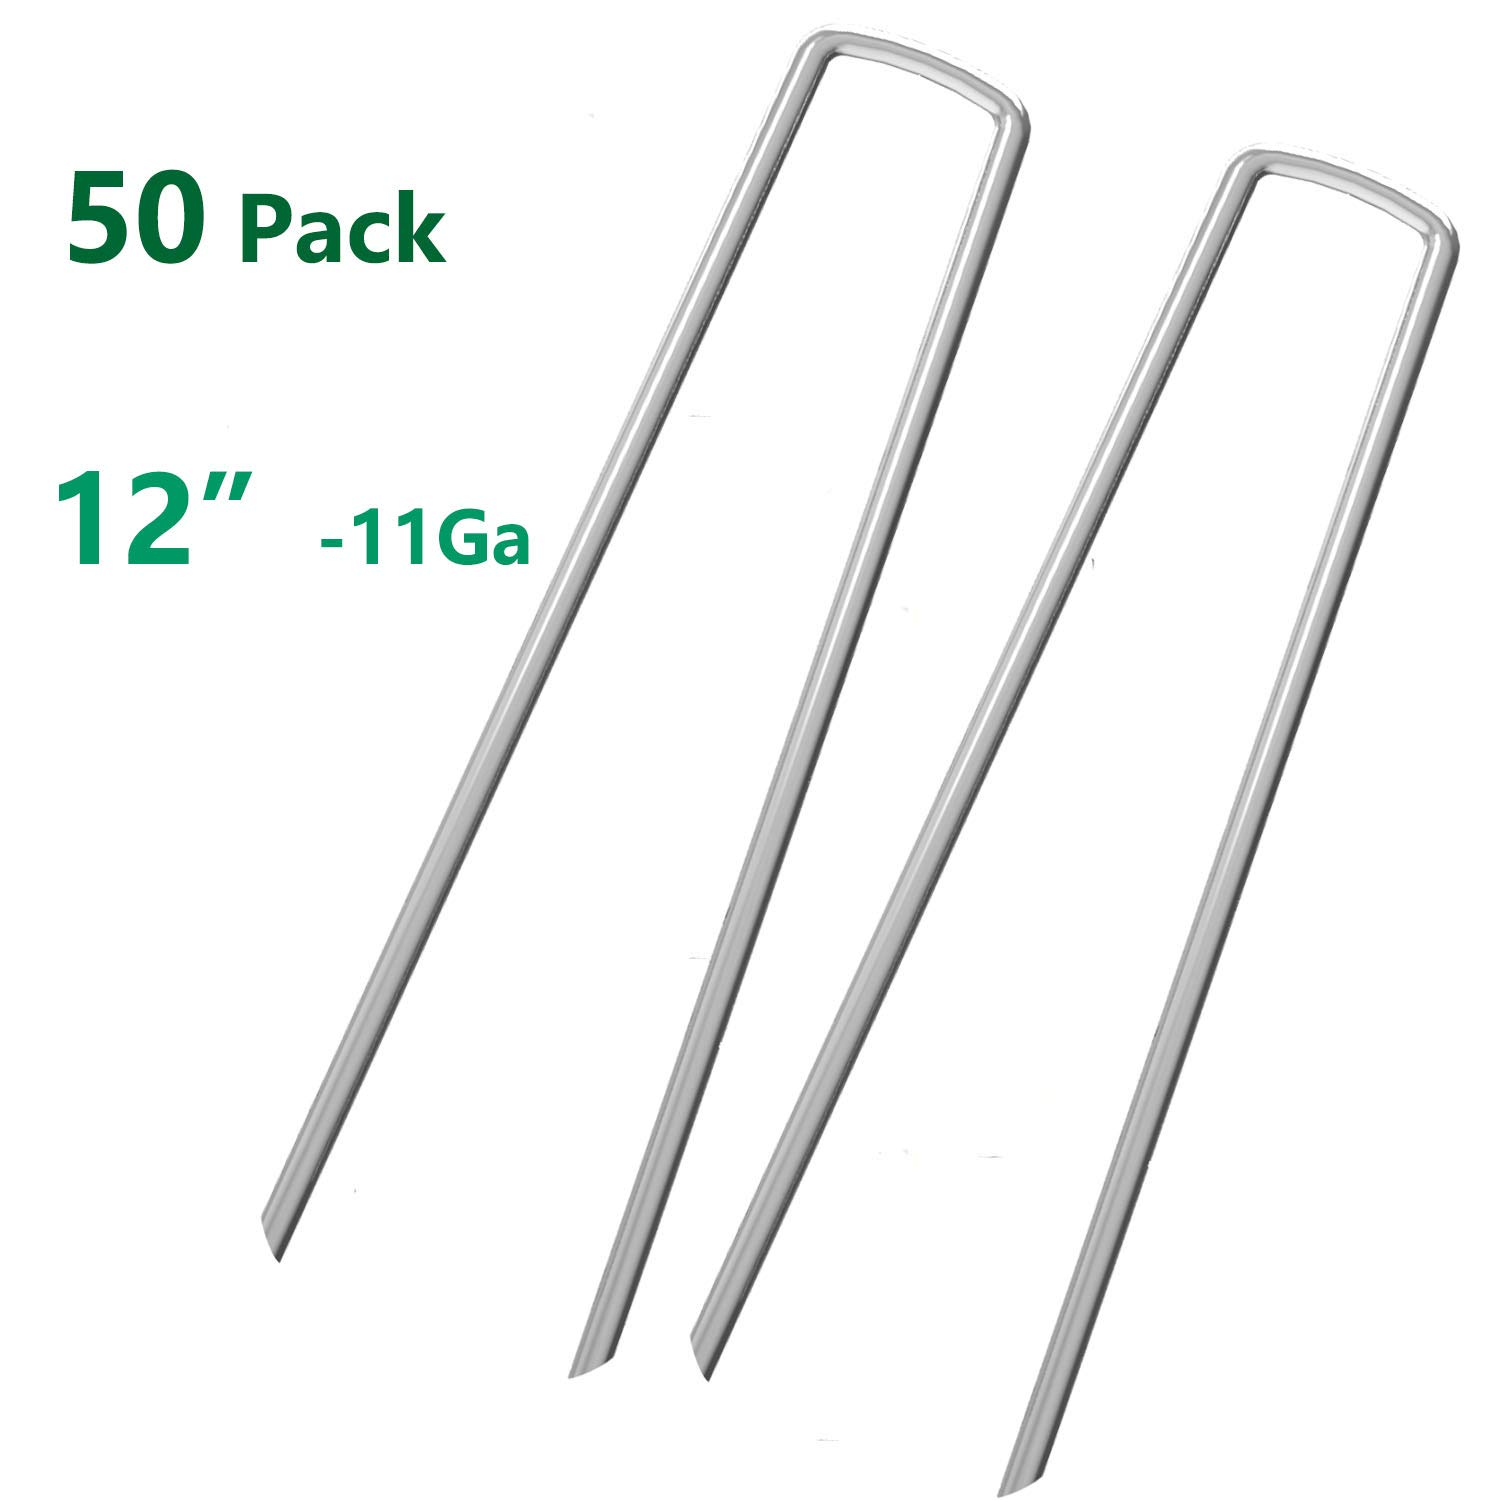 OuYi 50 Fence Anchors 12 Inch Garden Stakes/Spikes/Pins/Pegs 11 Gauge Galvanized Steel, Anchoring Landscaping, Weed Barrier Fabric, Ground Cover